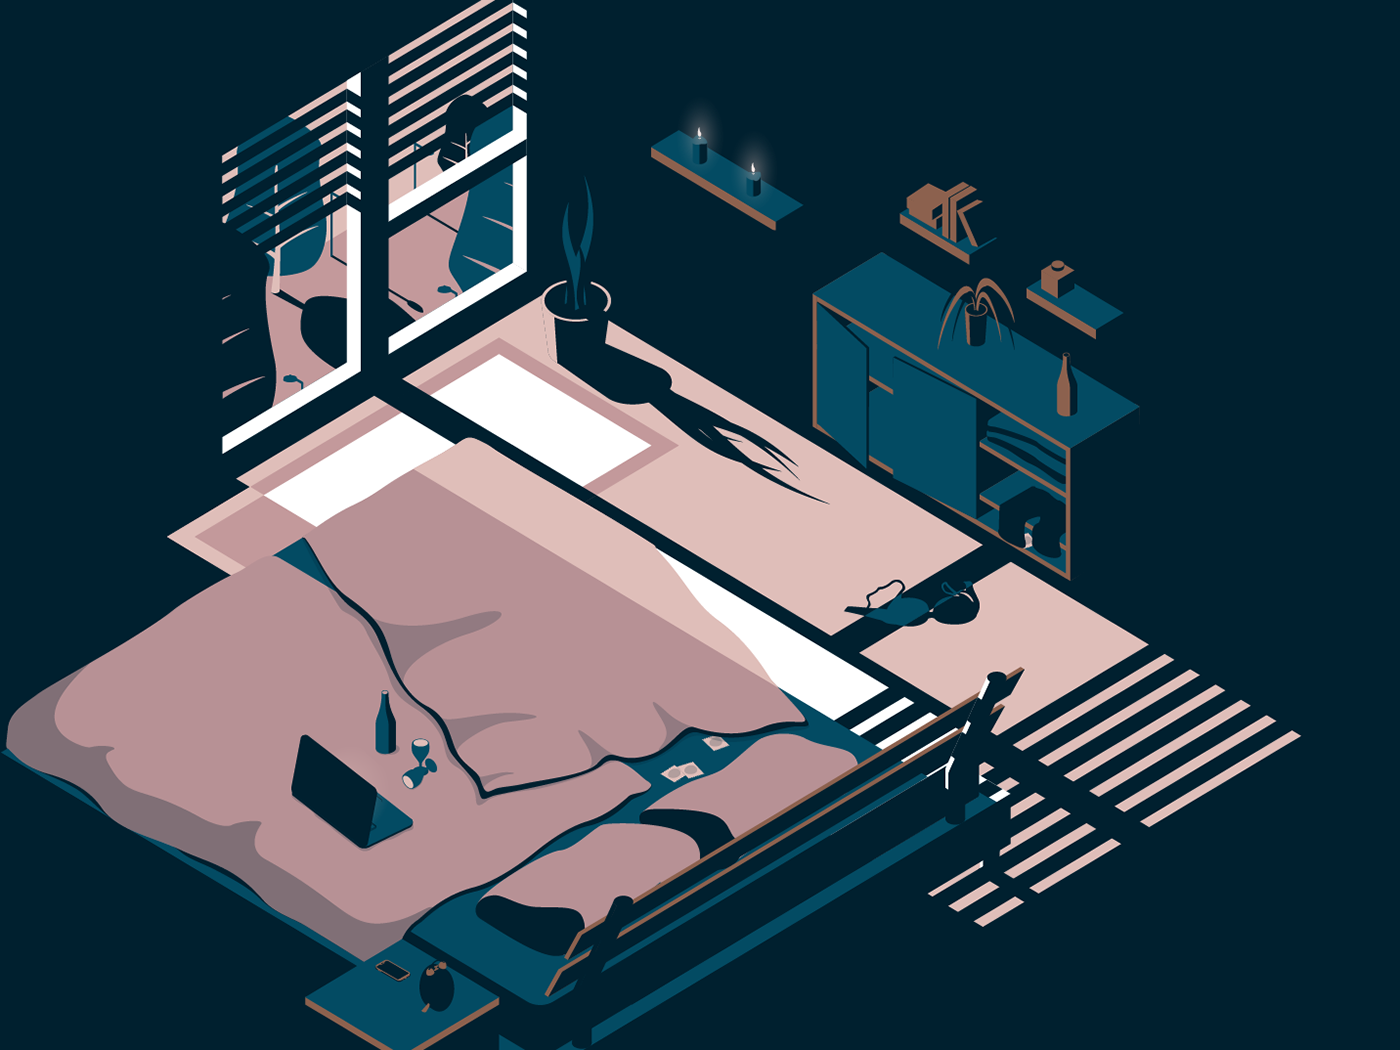 Bedroom with clothes on the floor and laptop on bed